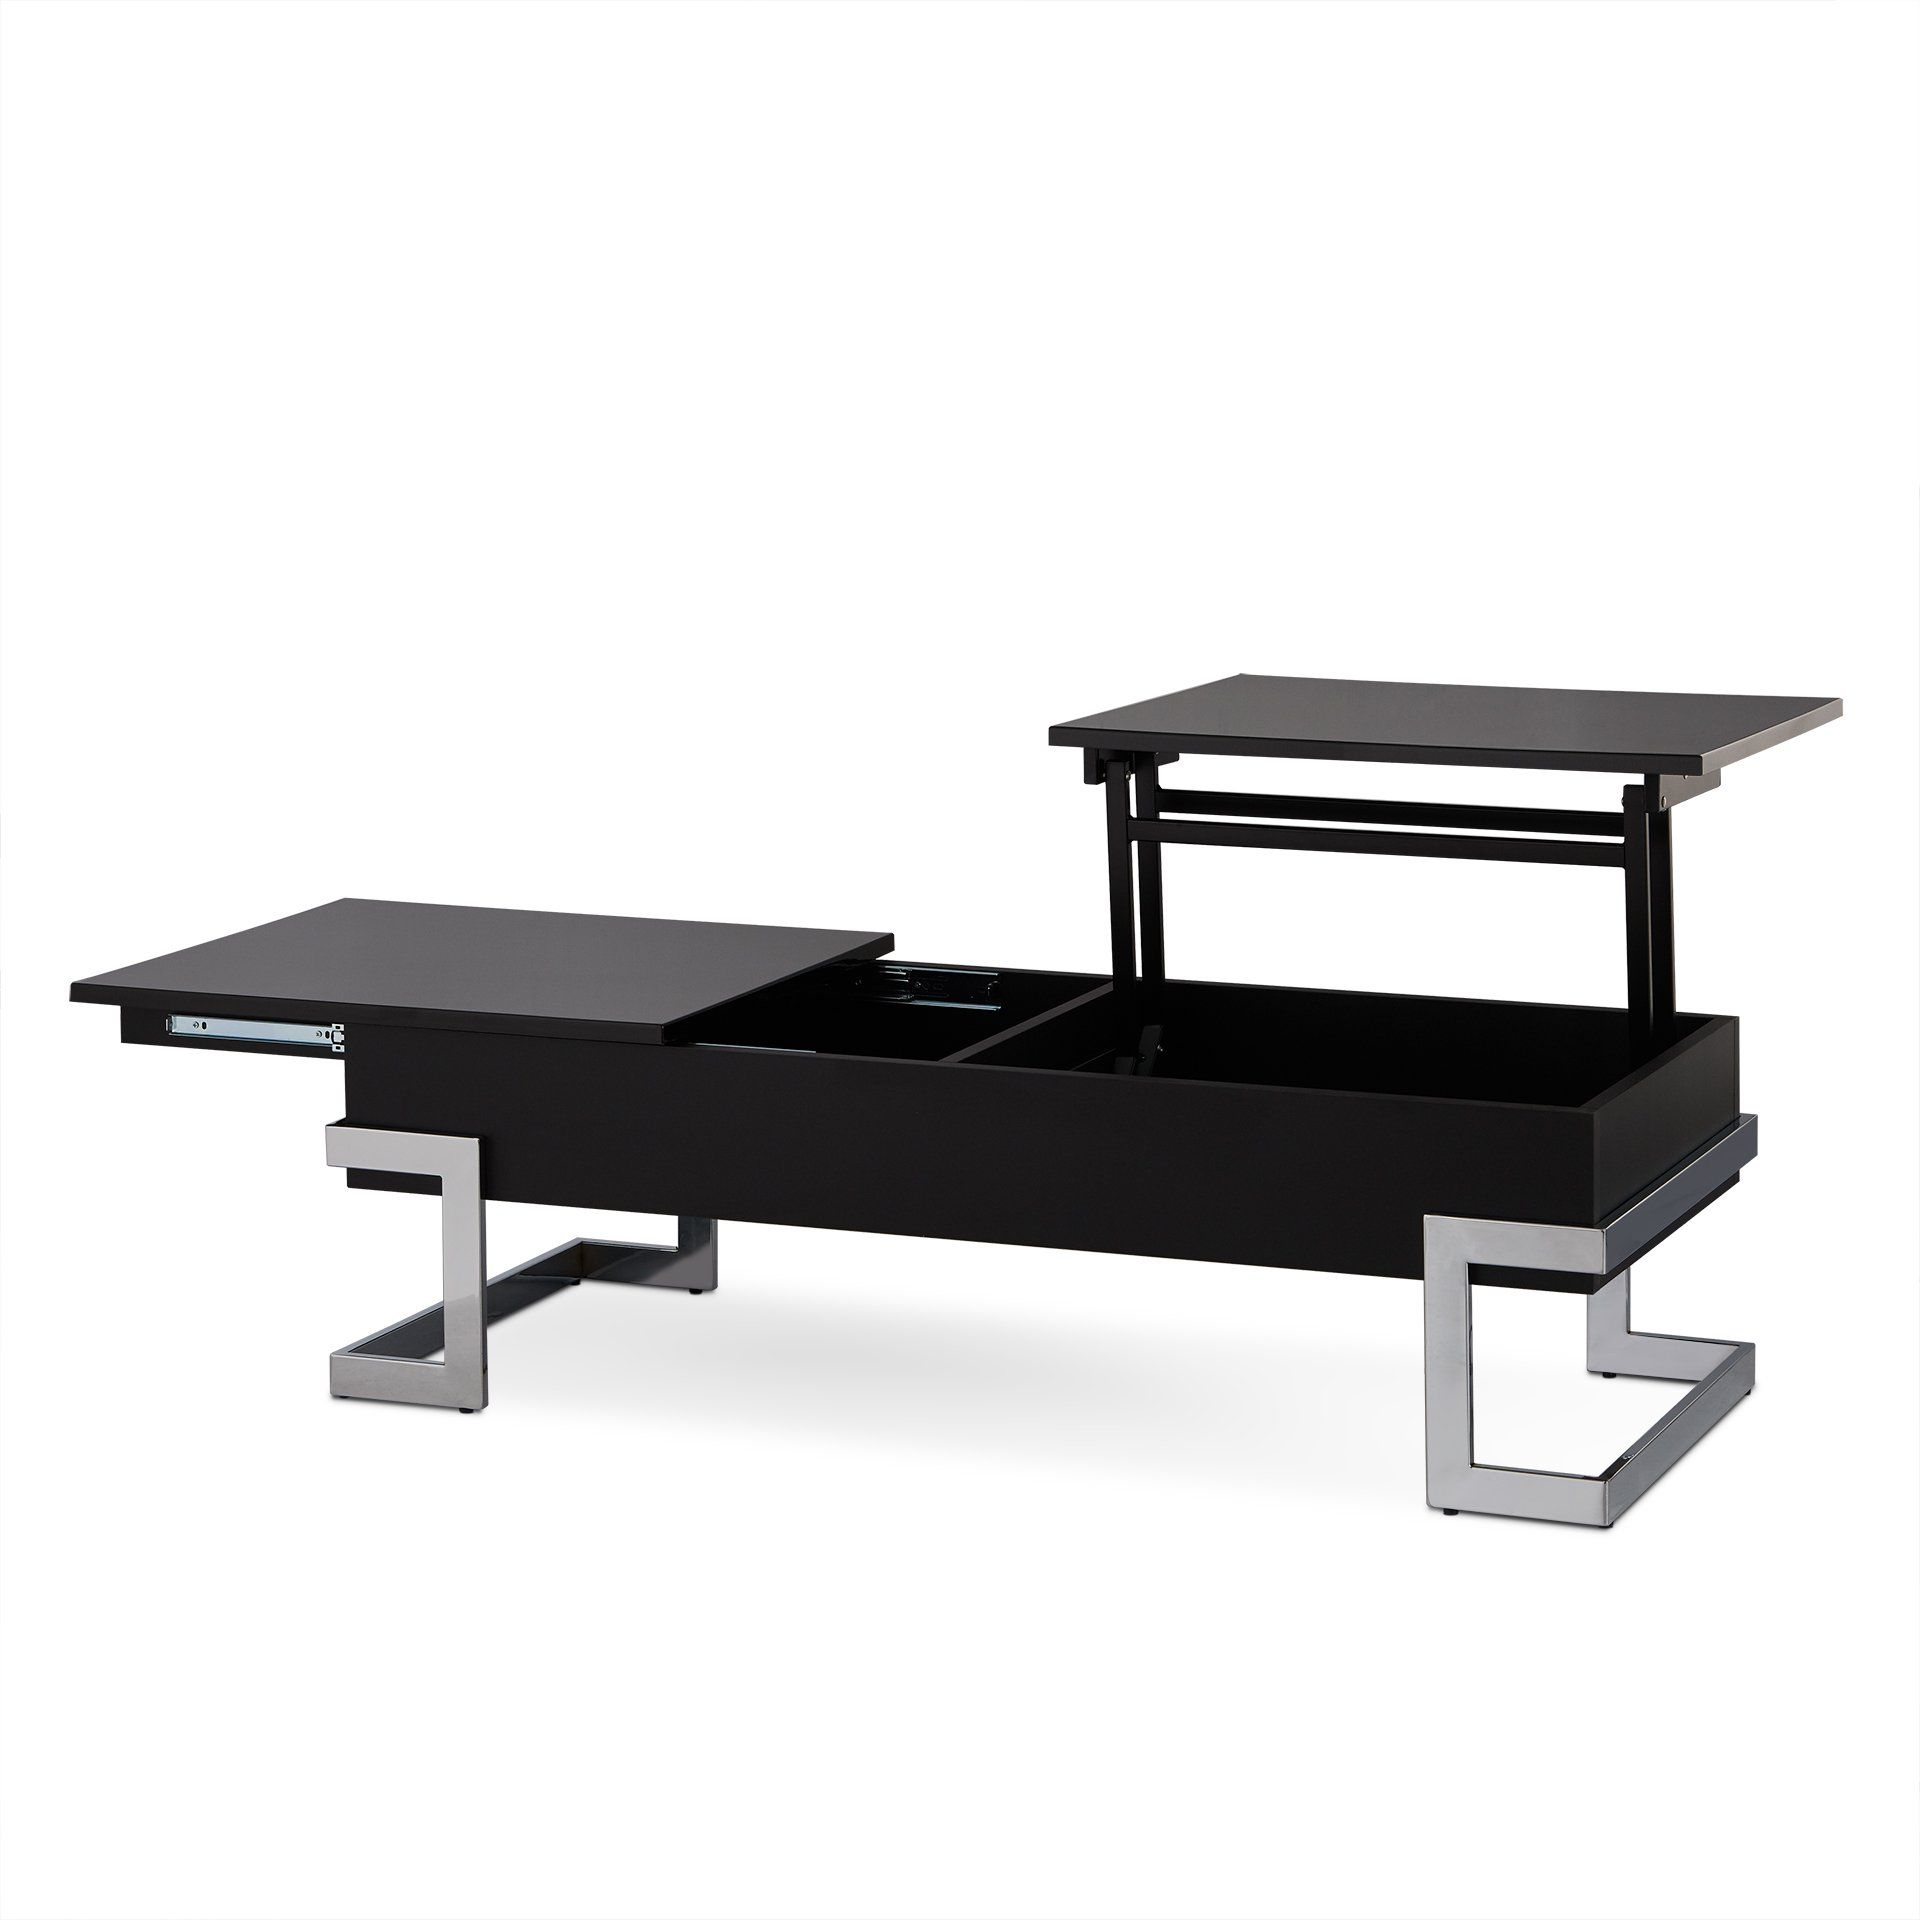 Acme furniture 81855 calnan lift top coffee table one size